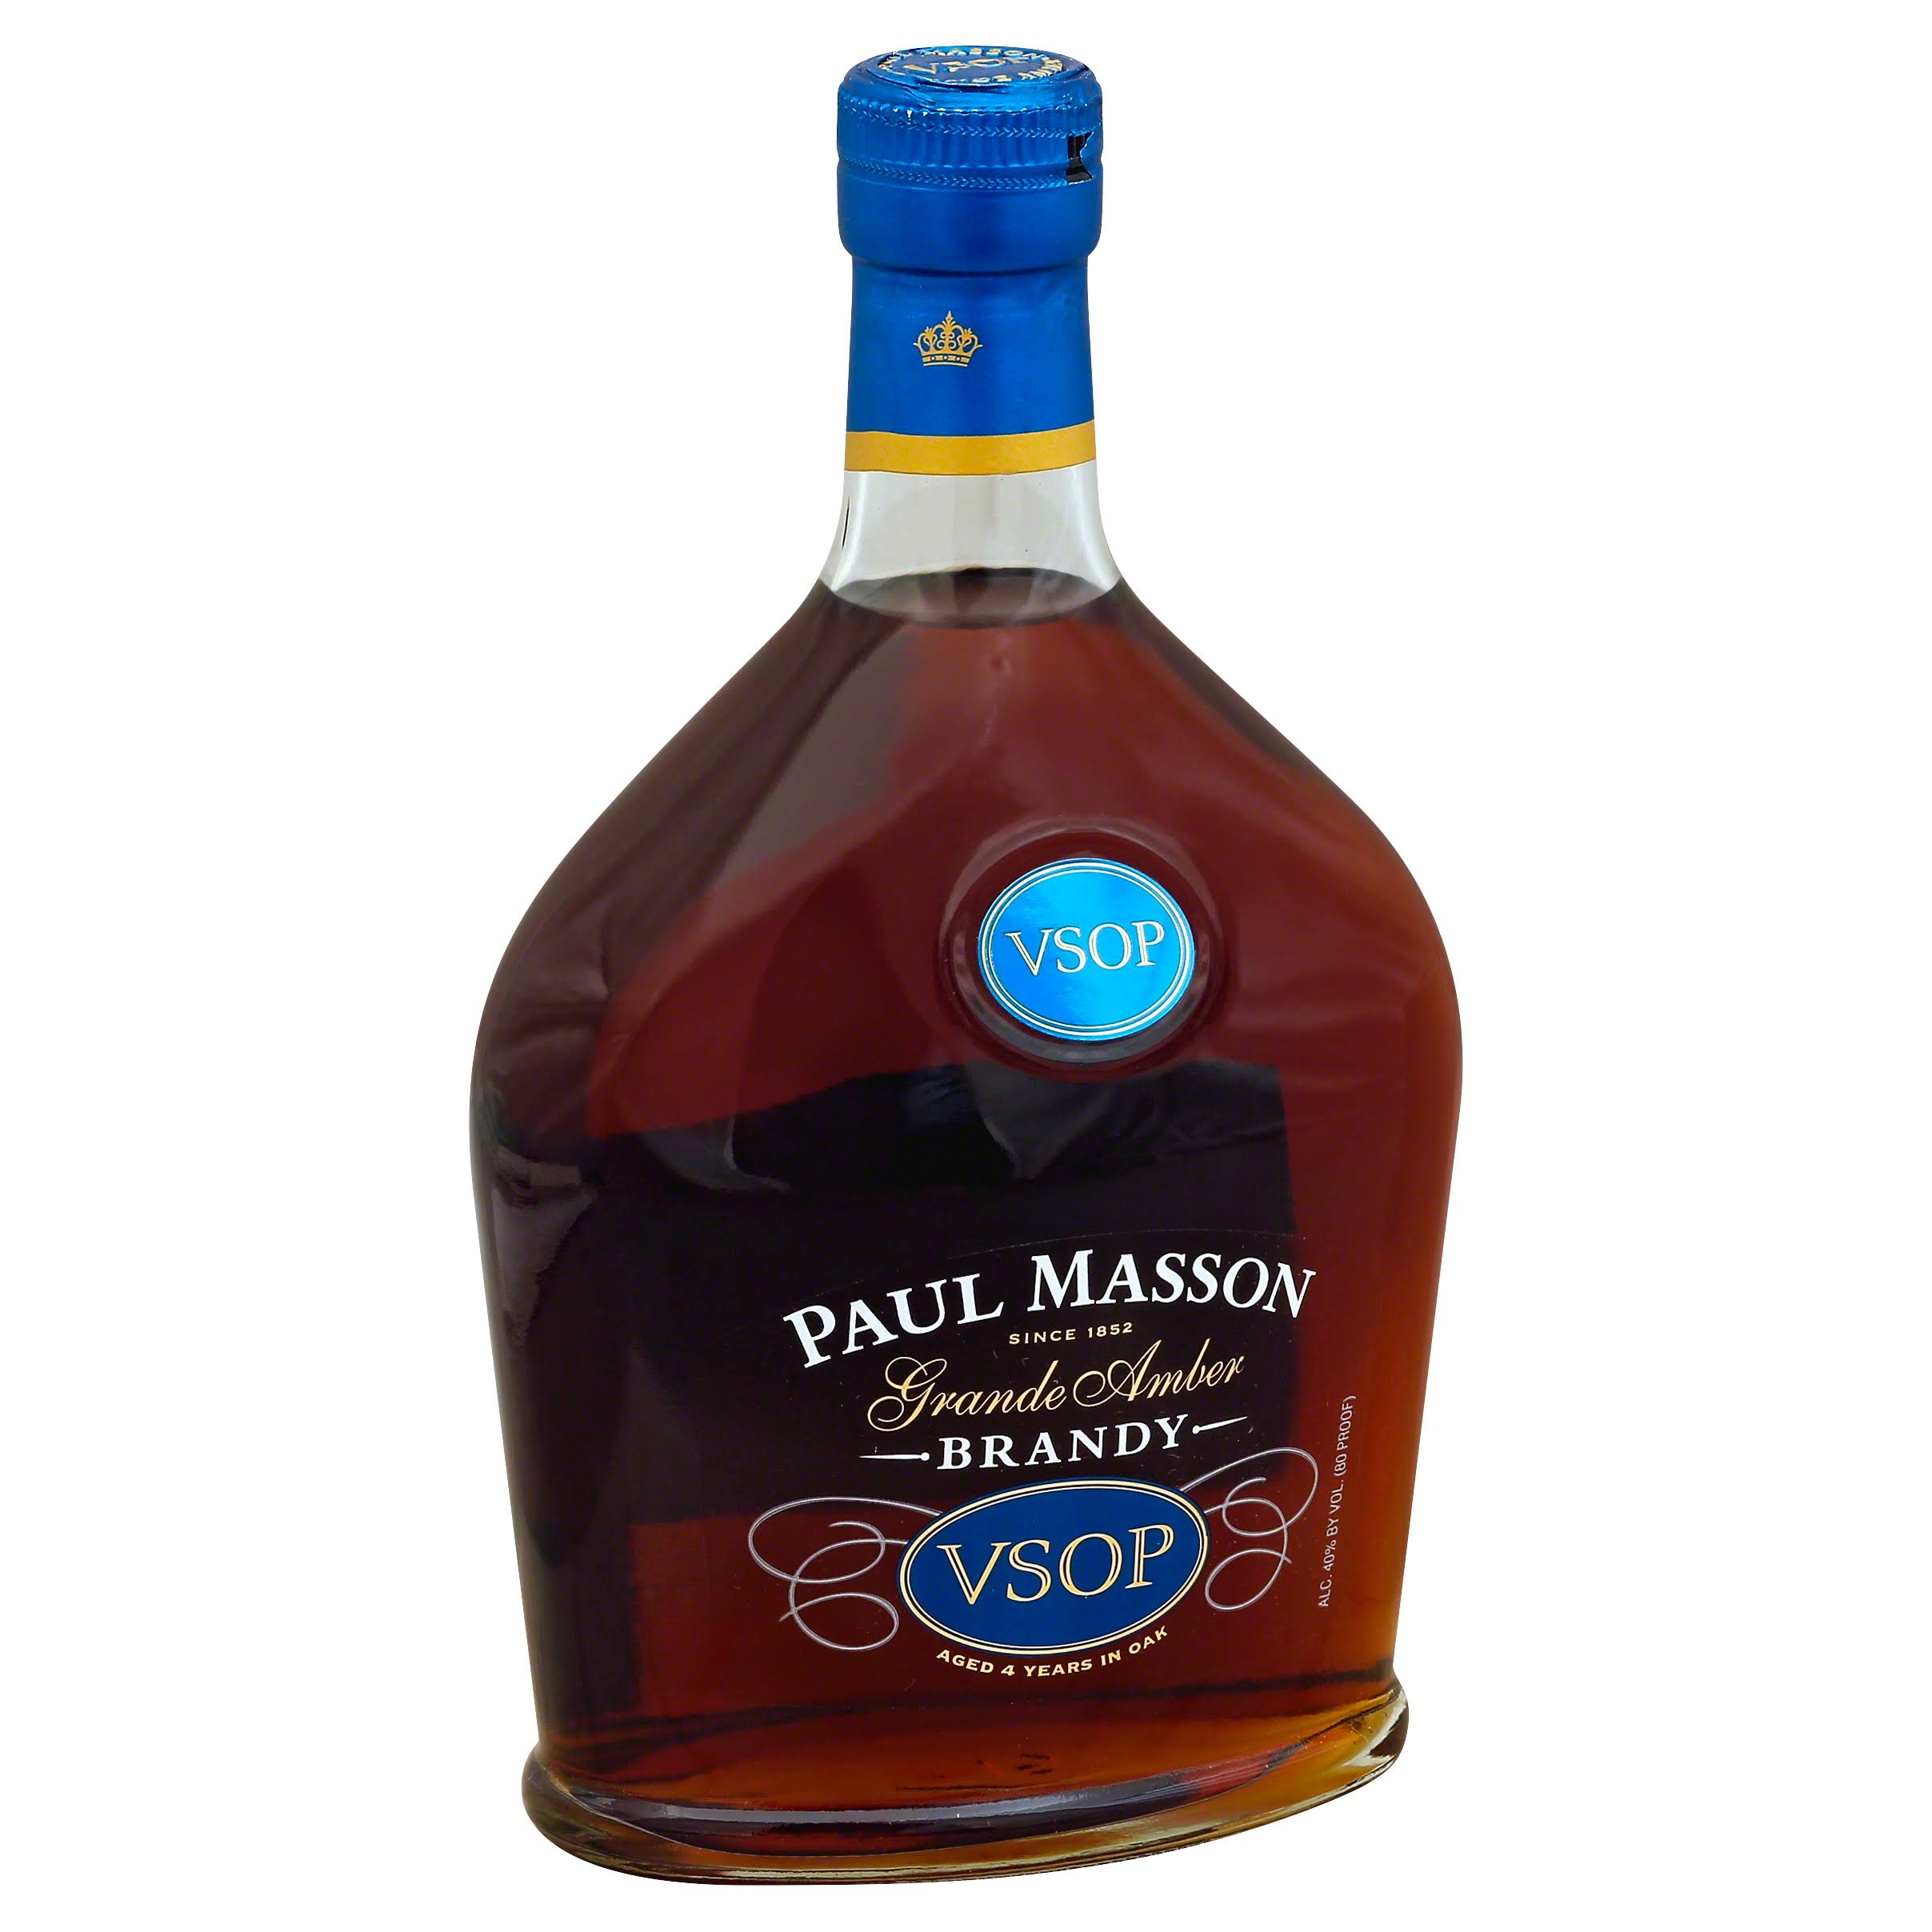 Paul Masson VSOP Brandy - 750 ml bottle